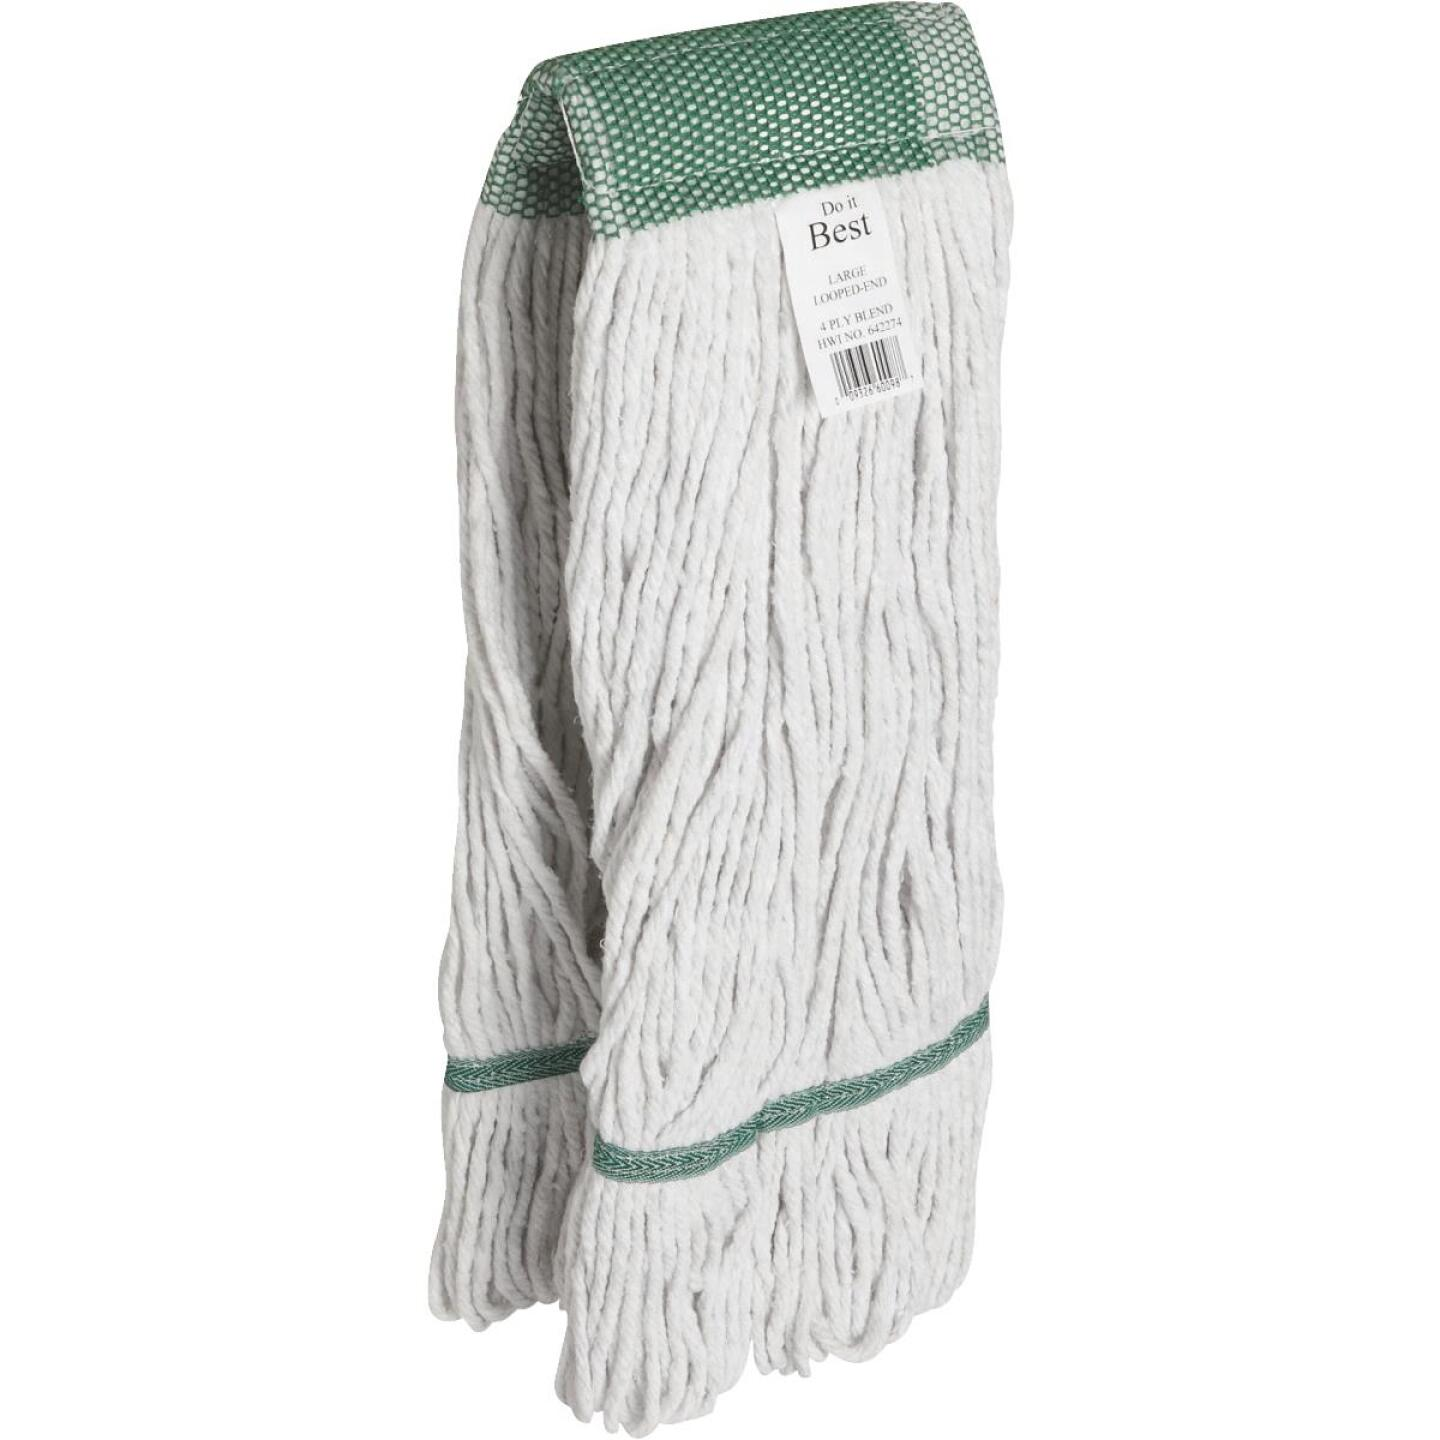 Do it 22 Oz. Cotton Loop-End Mop Head Image 1